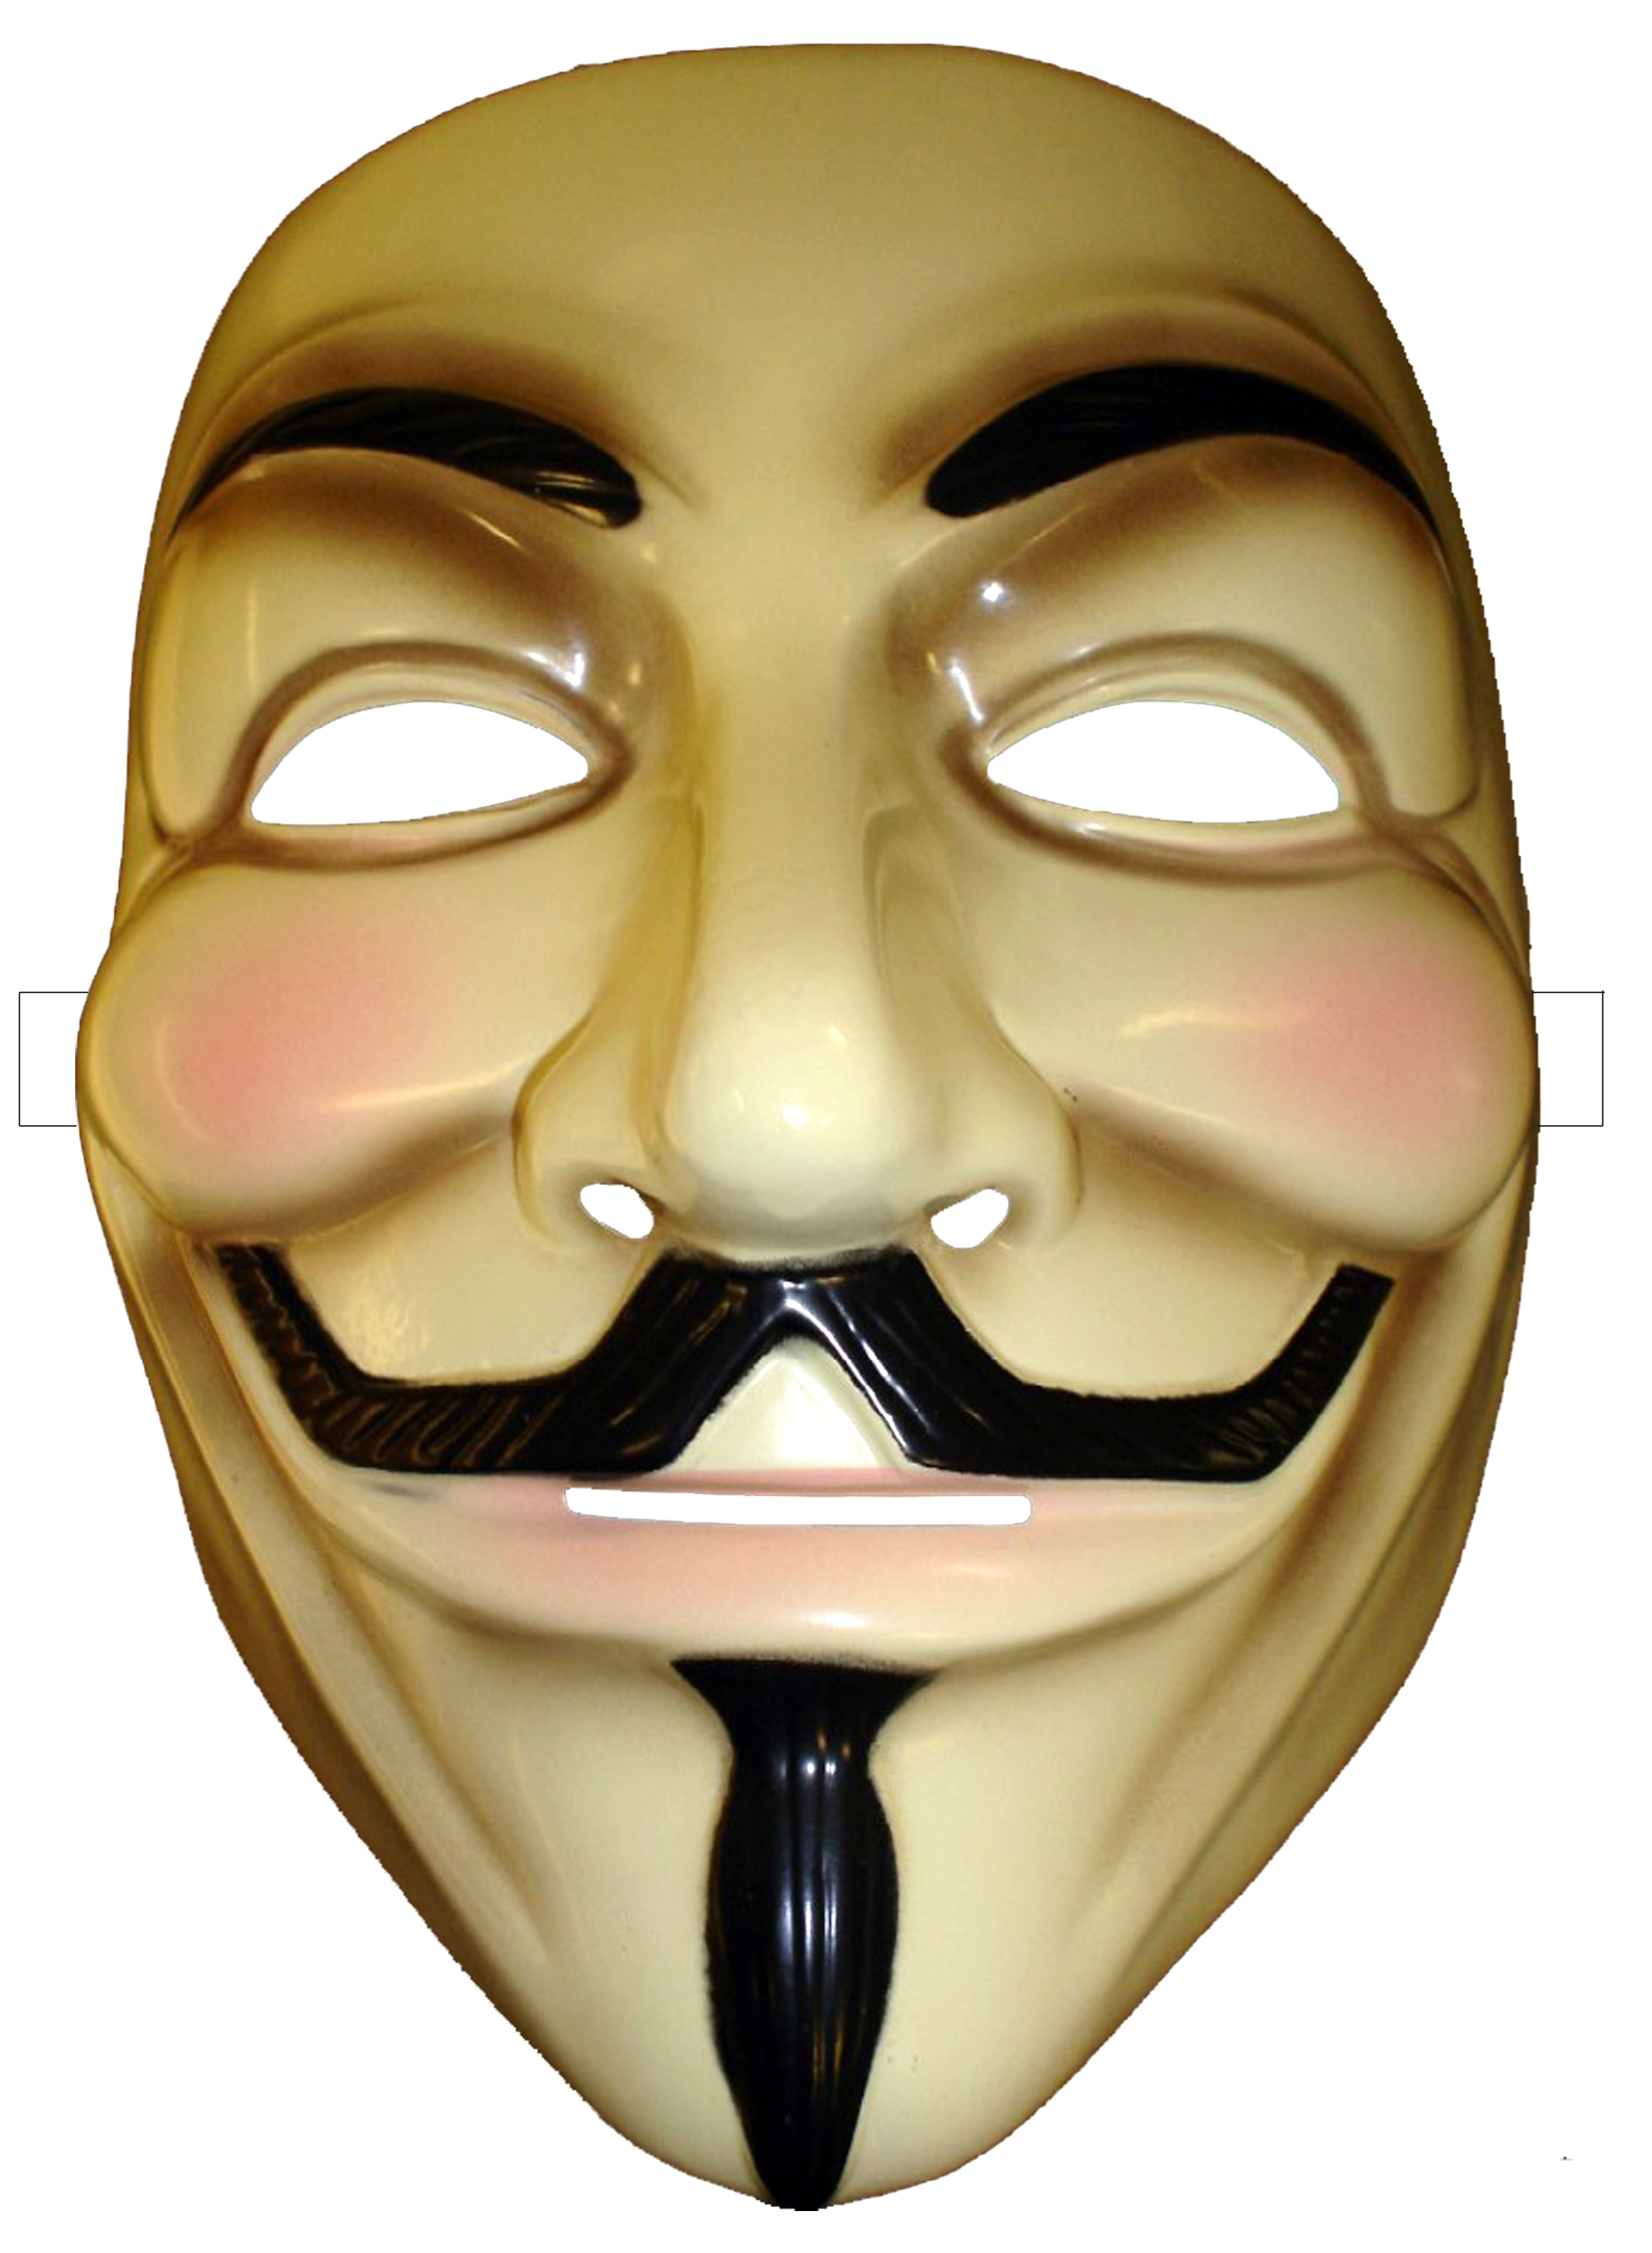 for vendetta guy fawkes masks mask funny 16